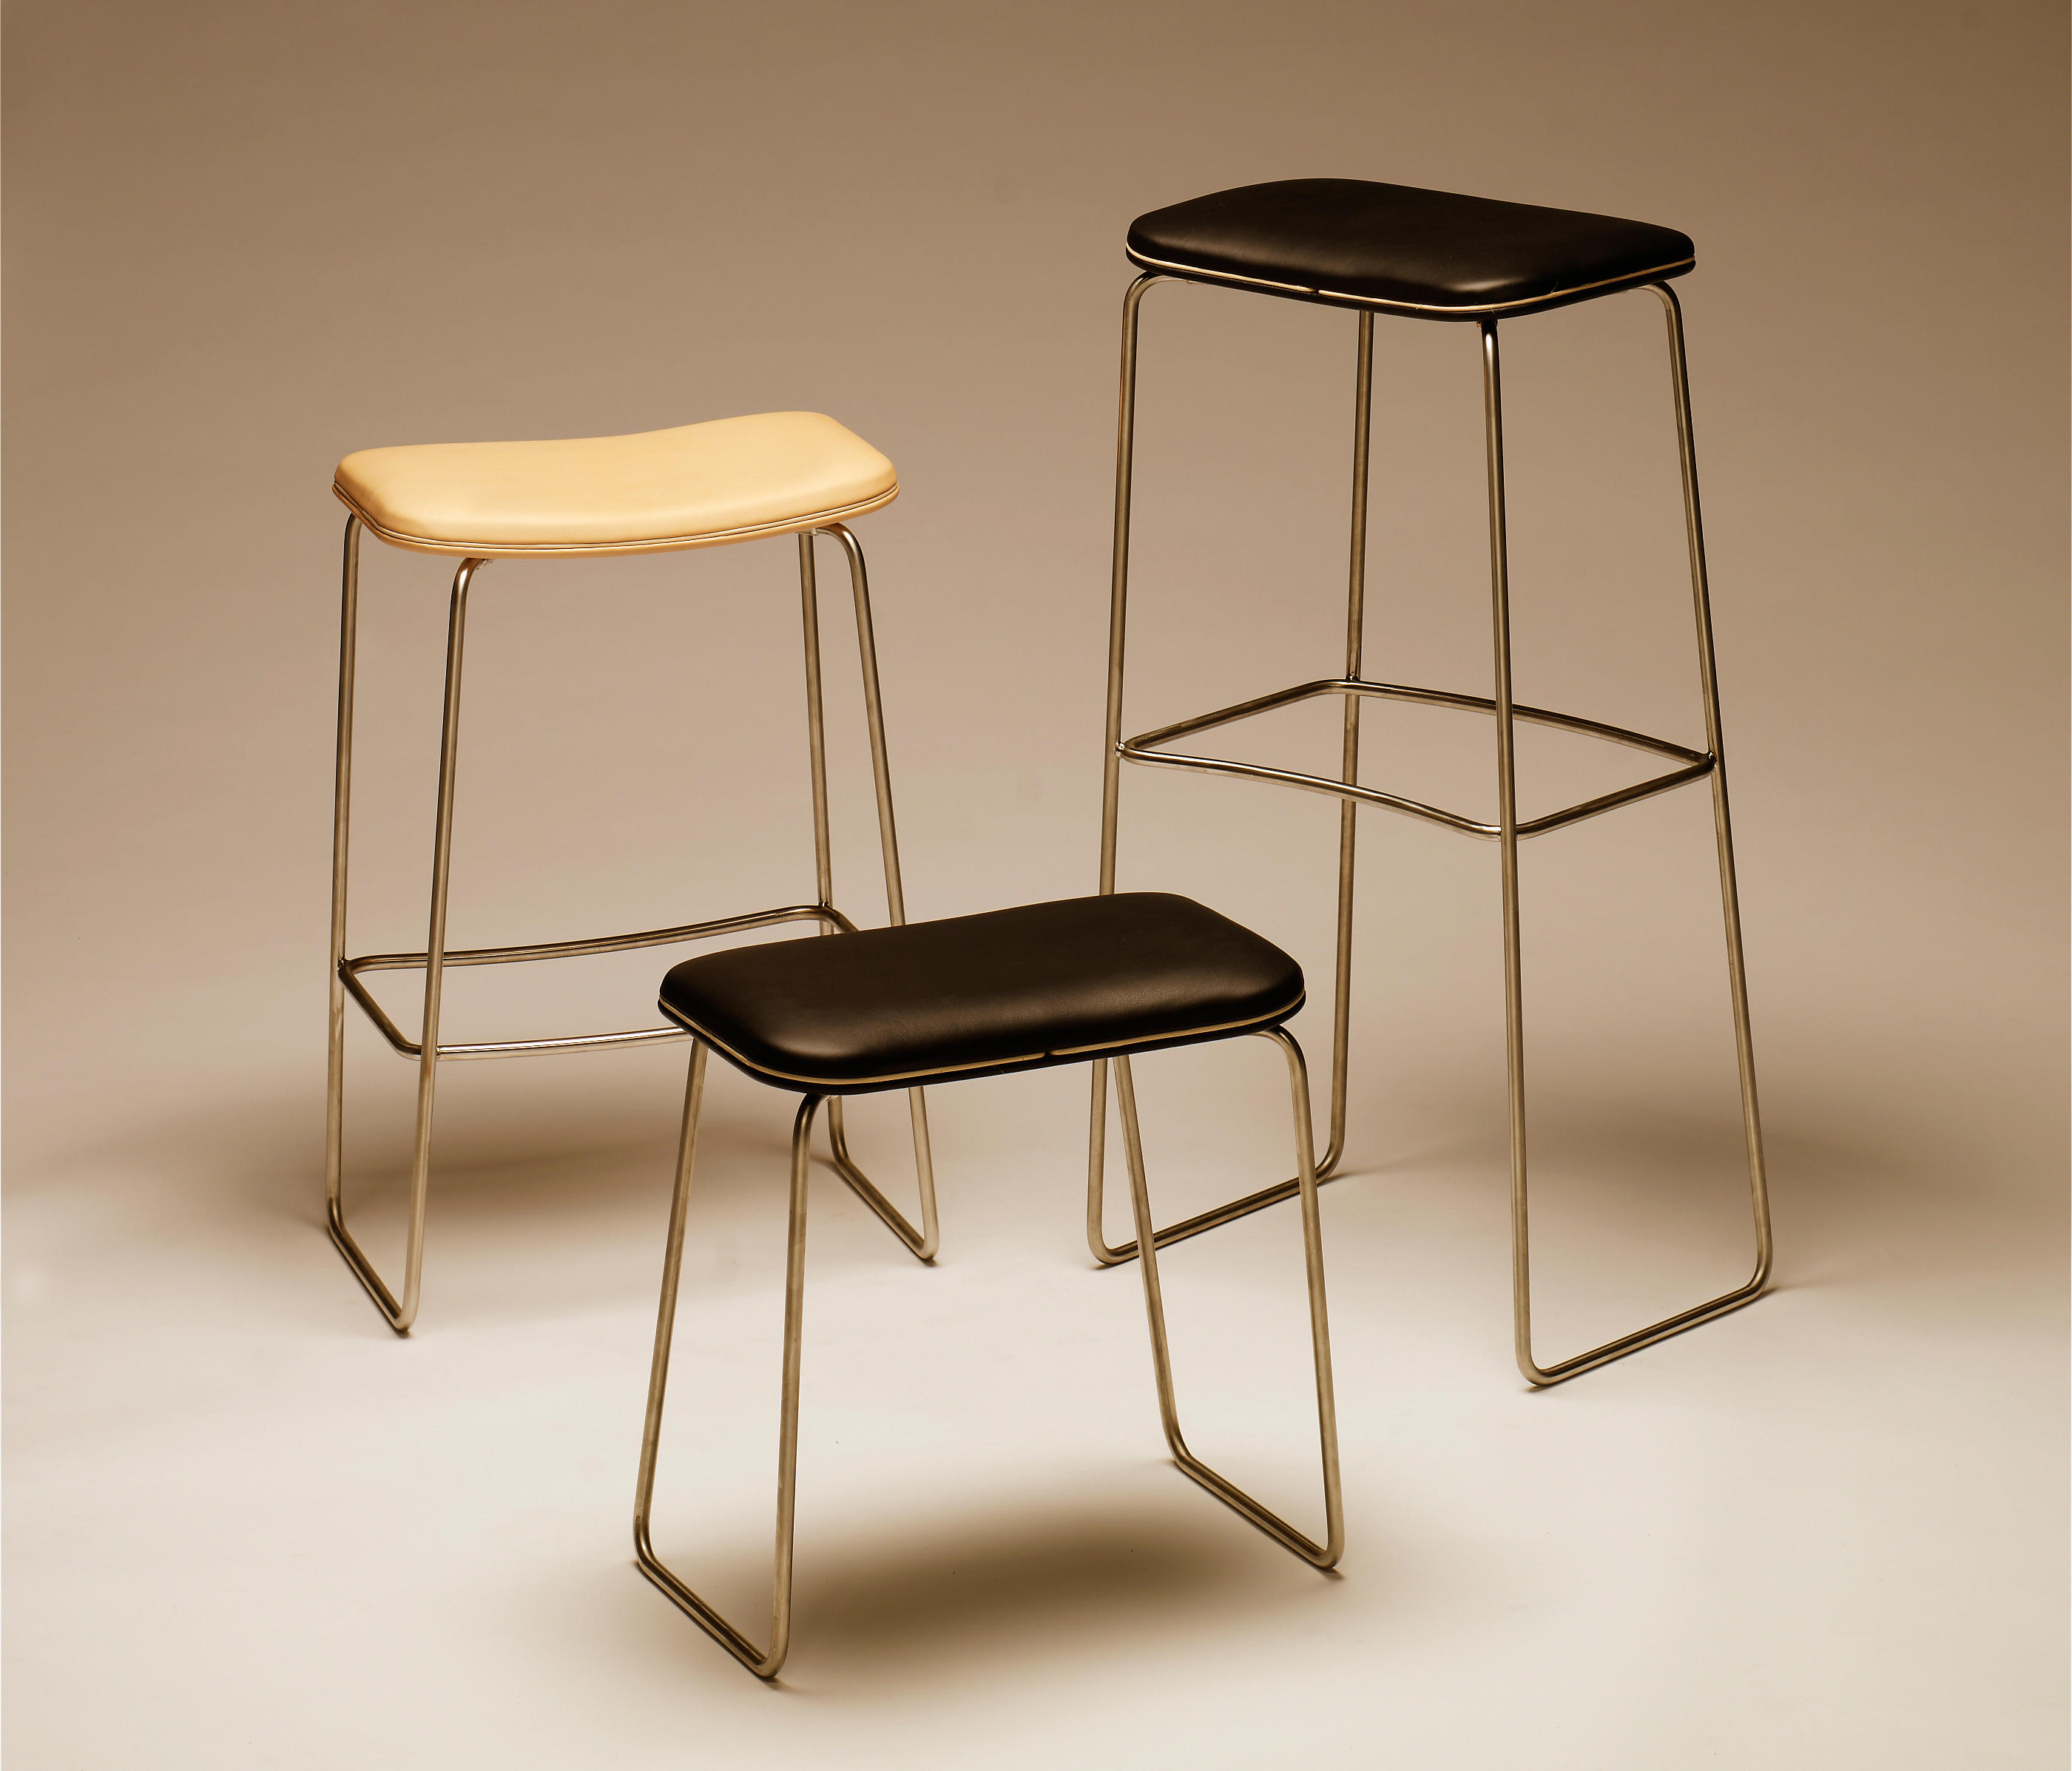 Lederhocker Rund P.1 430 - Stools From Pwh Furniture | Architonic